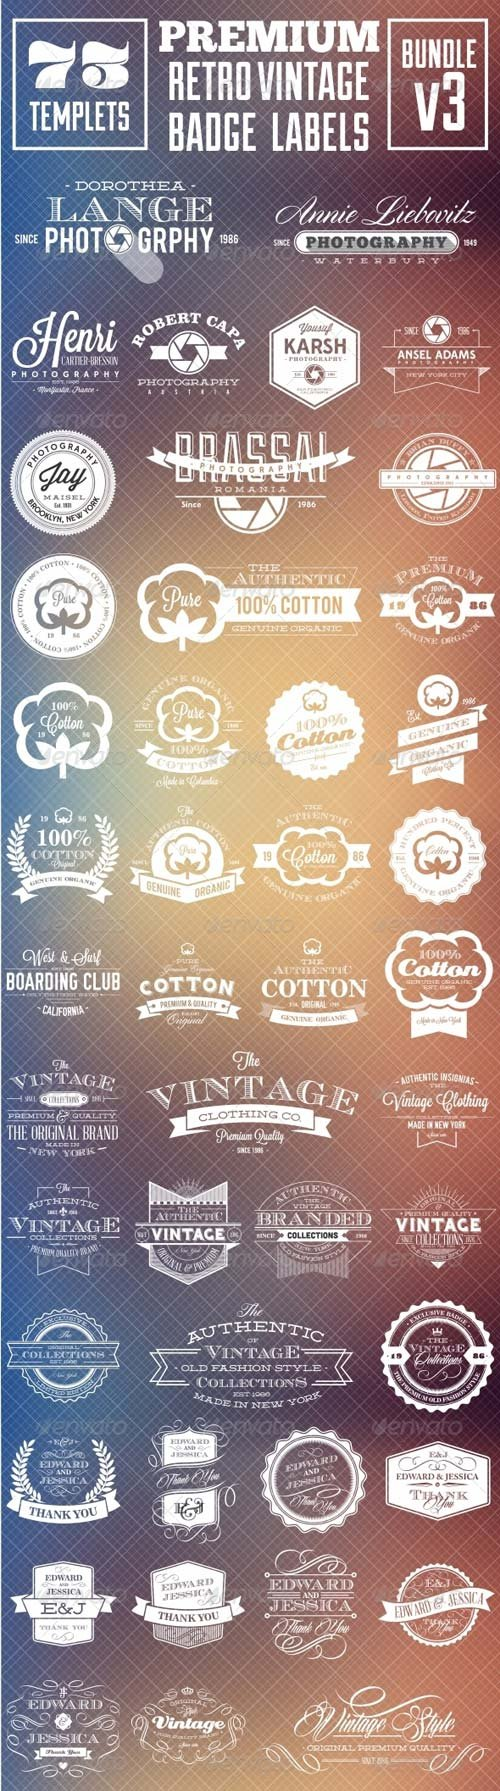 GraphicRiver Premium Retro Vintage Badge Labels Bundle v3